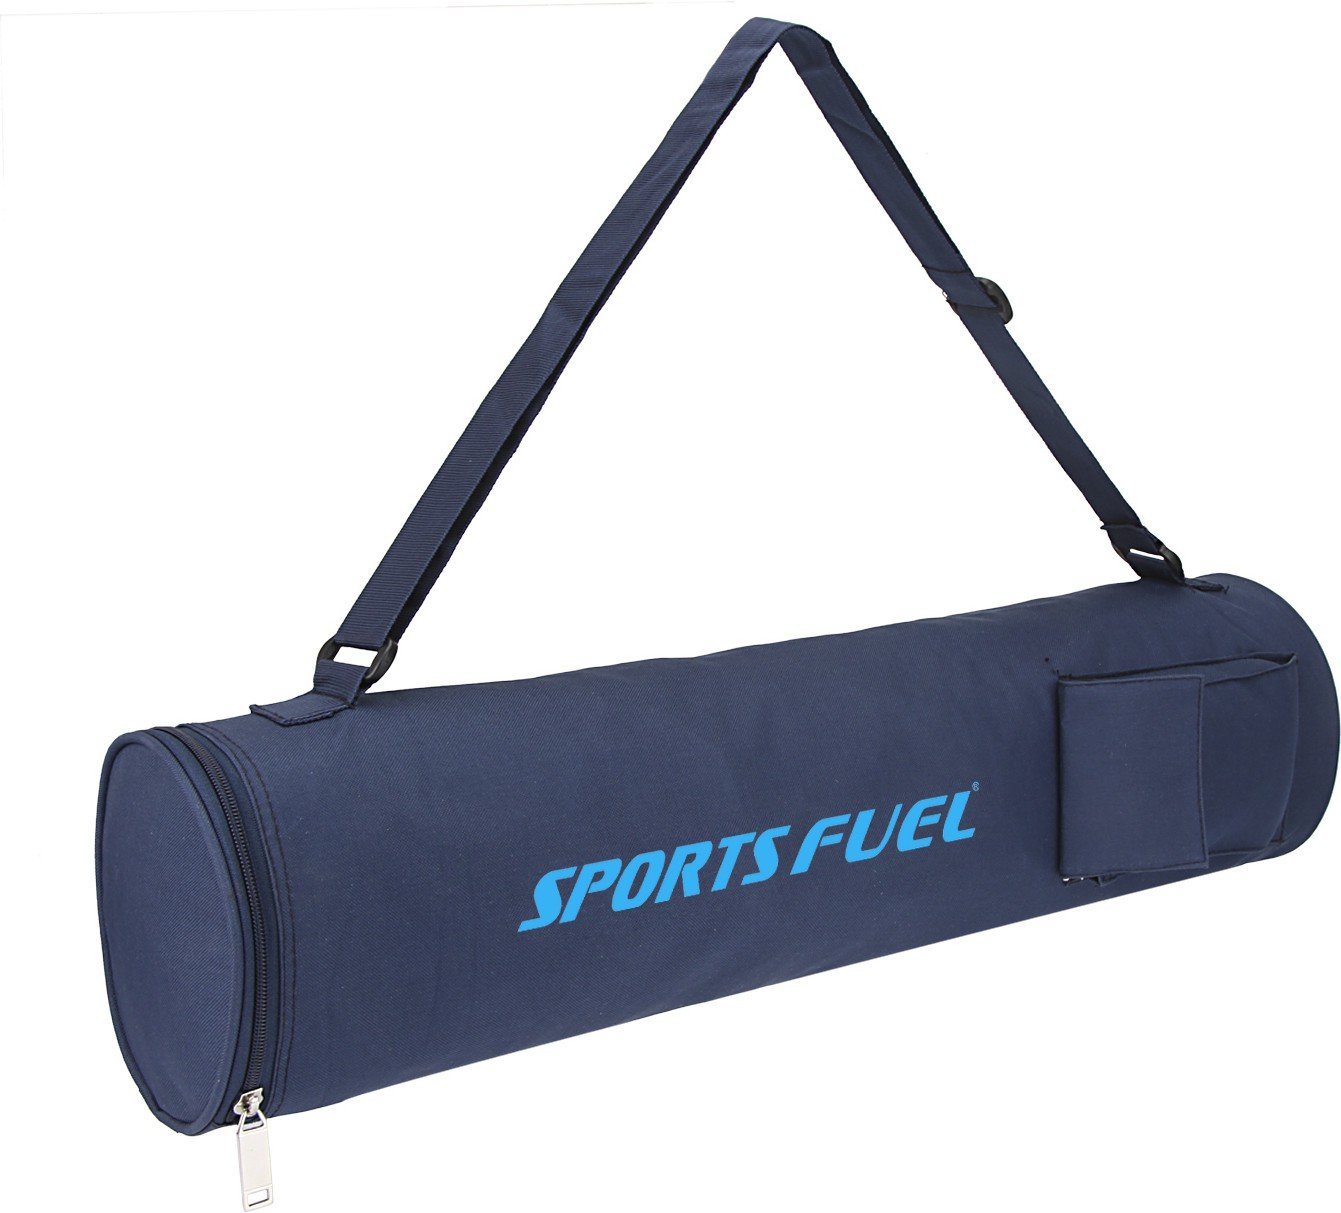 Yoga Mat Bags  Buy Yoga Mat Bags Online at Best Prices in India ... efdbcd423